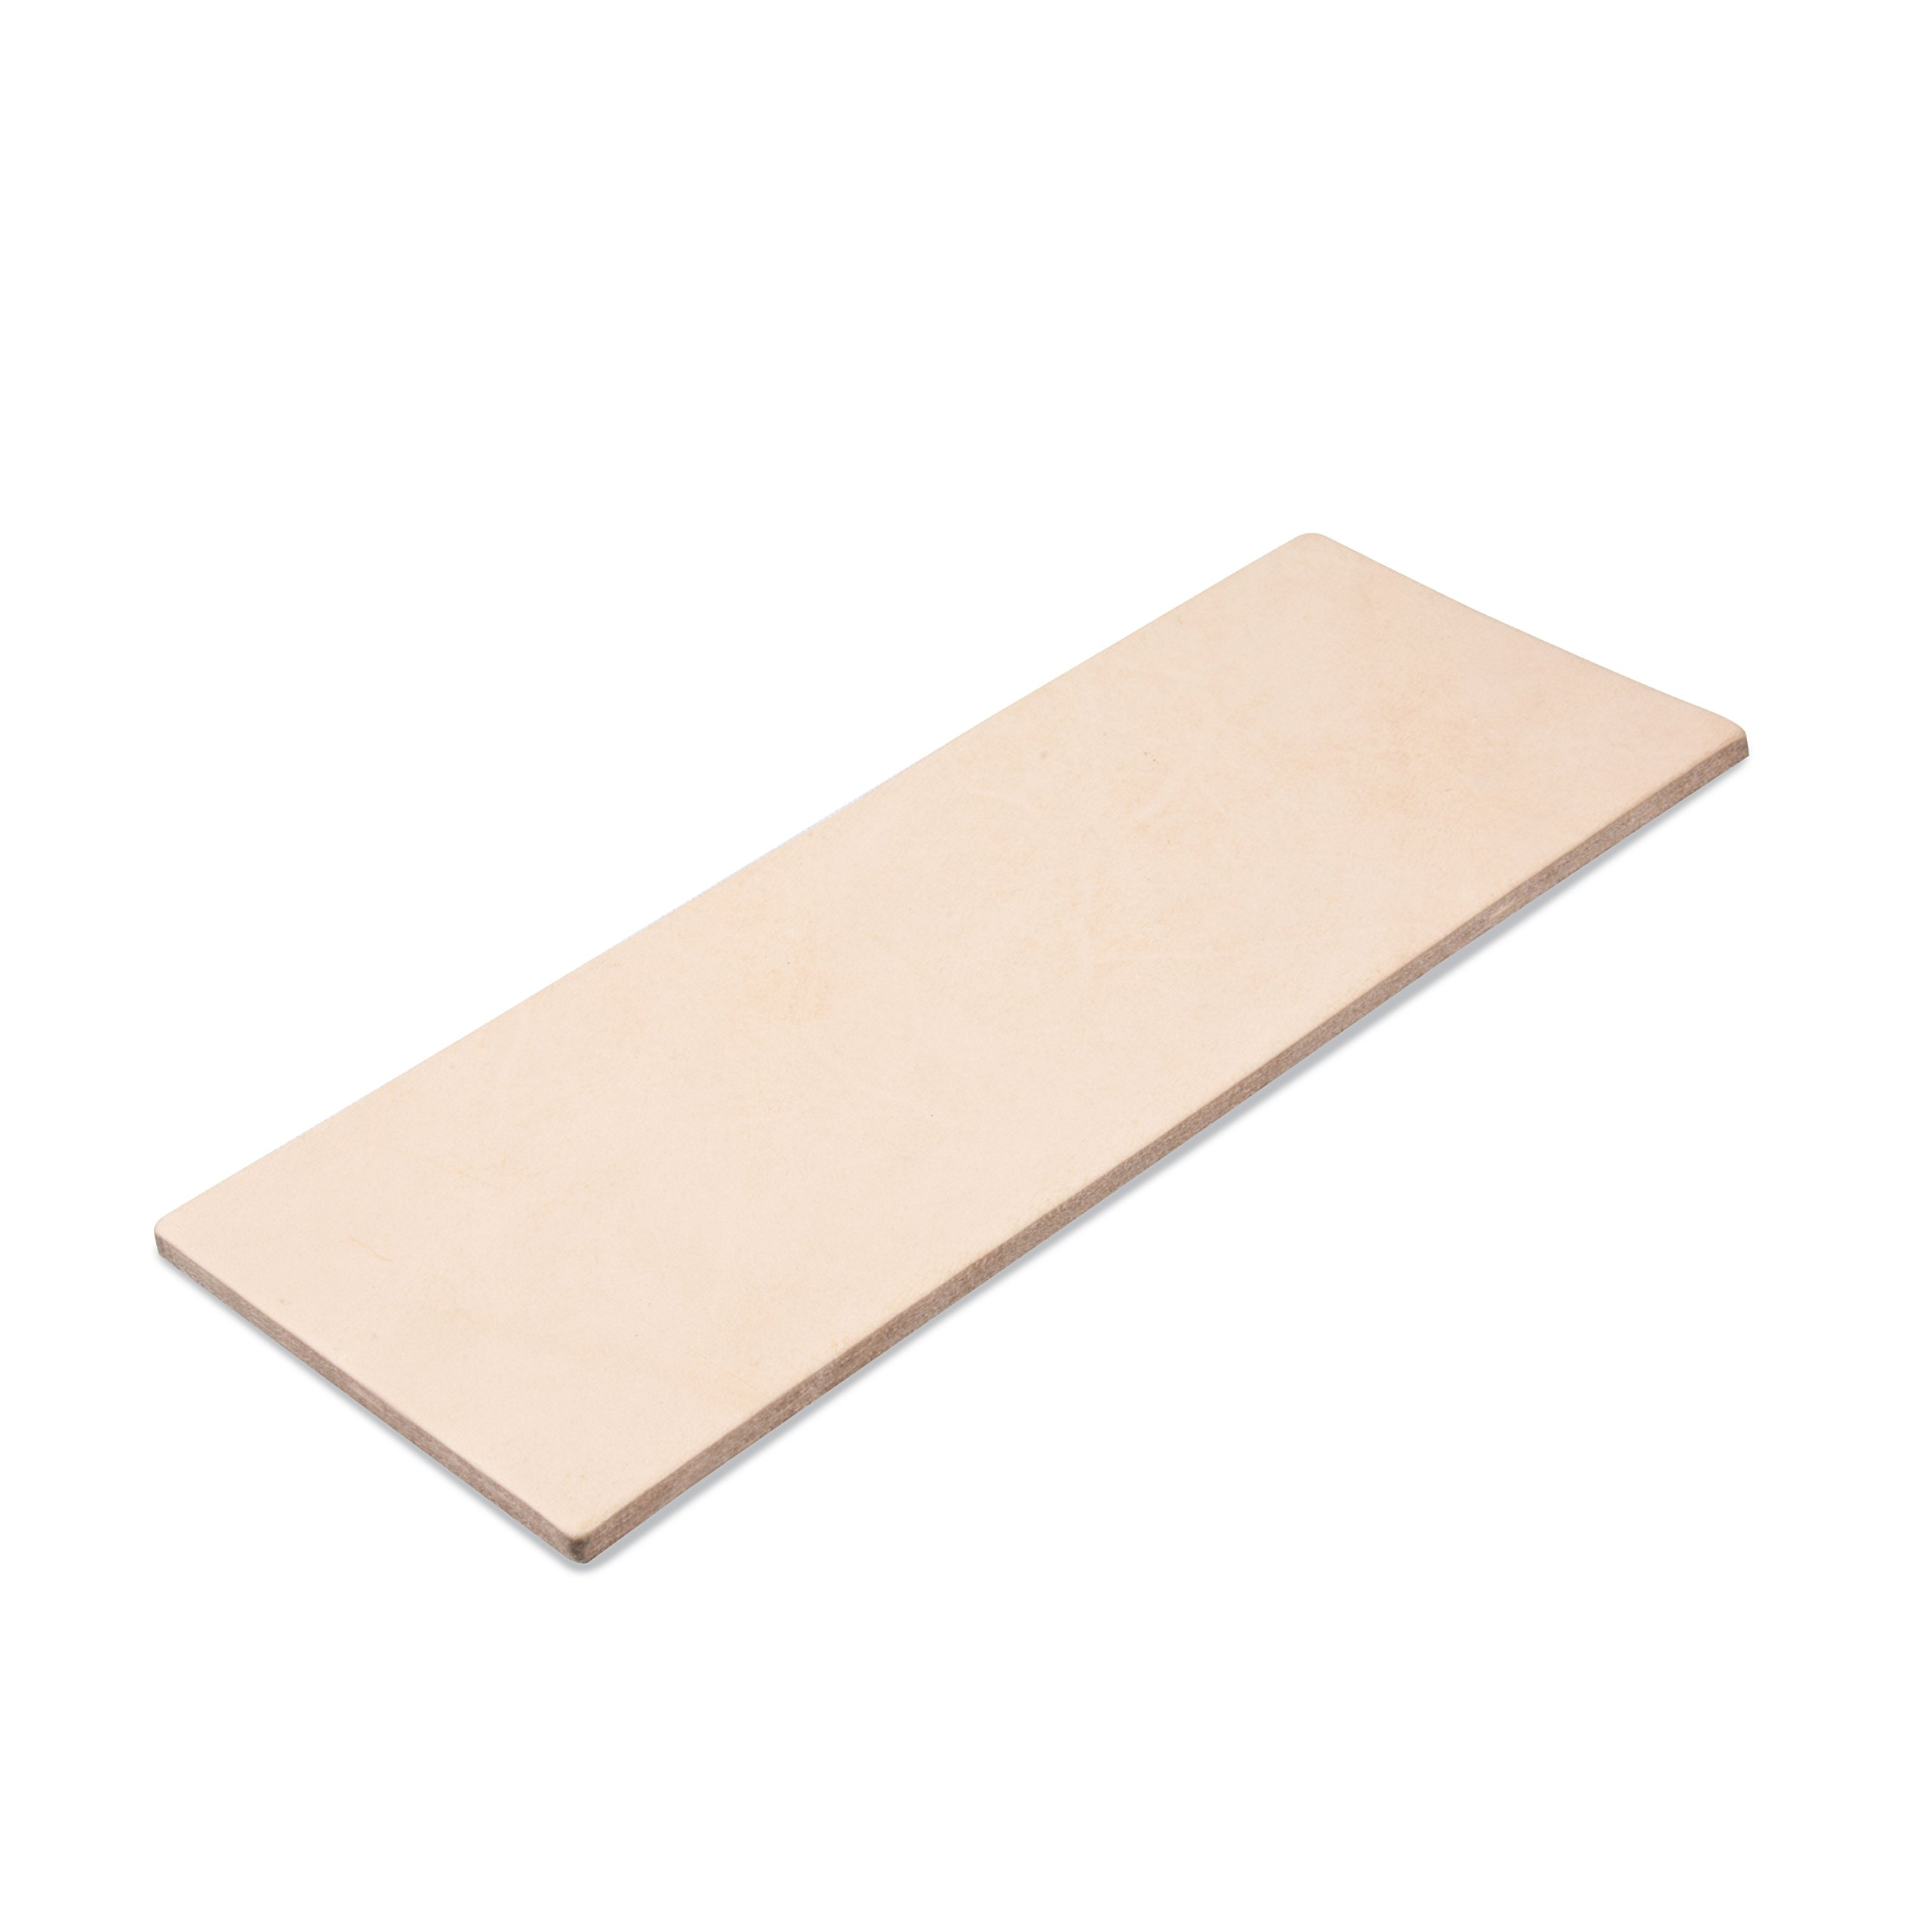 Trend UDWS/HP/LS Honing Compound Leather Strop